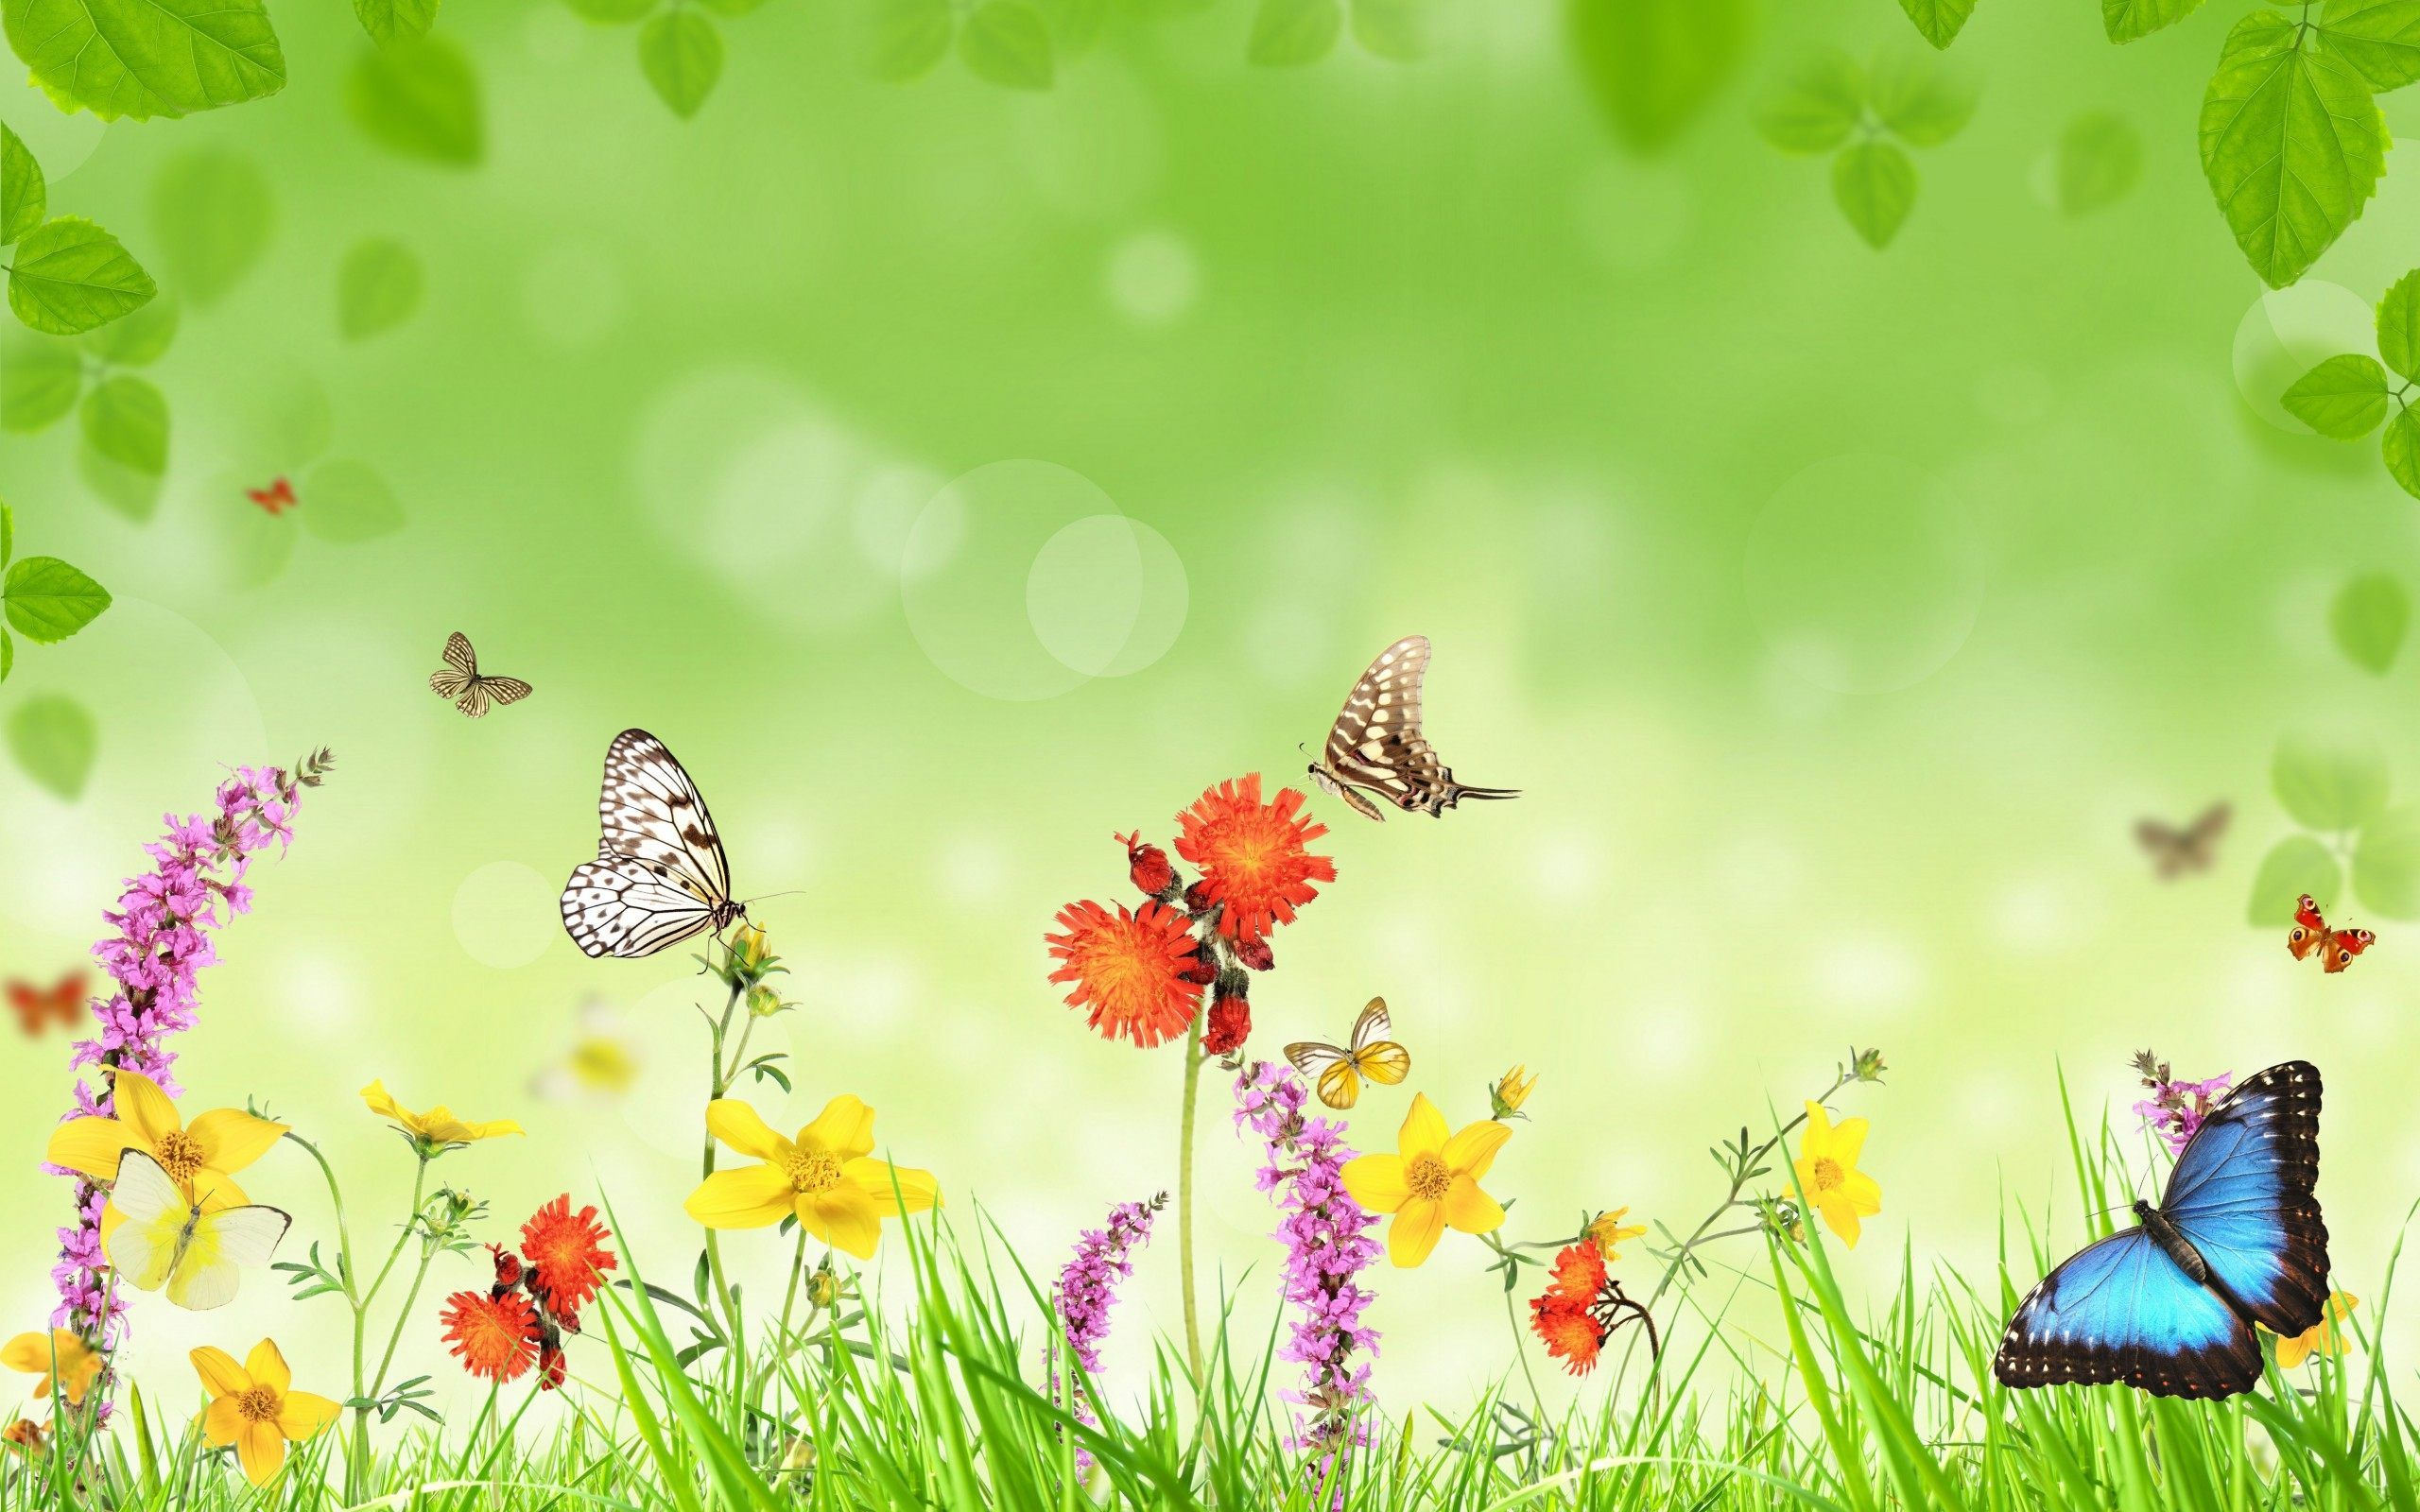 40 Beautiful Flower Wallpapers For Your Desktop Mobile And: Butterfly Wallpaper : Find Best Latest Butterfly Wallpaper